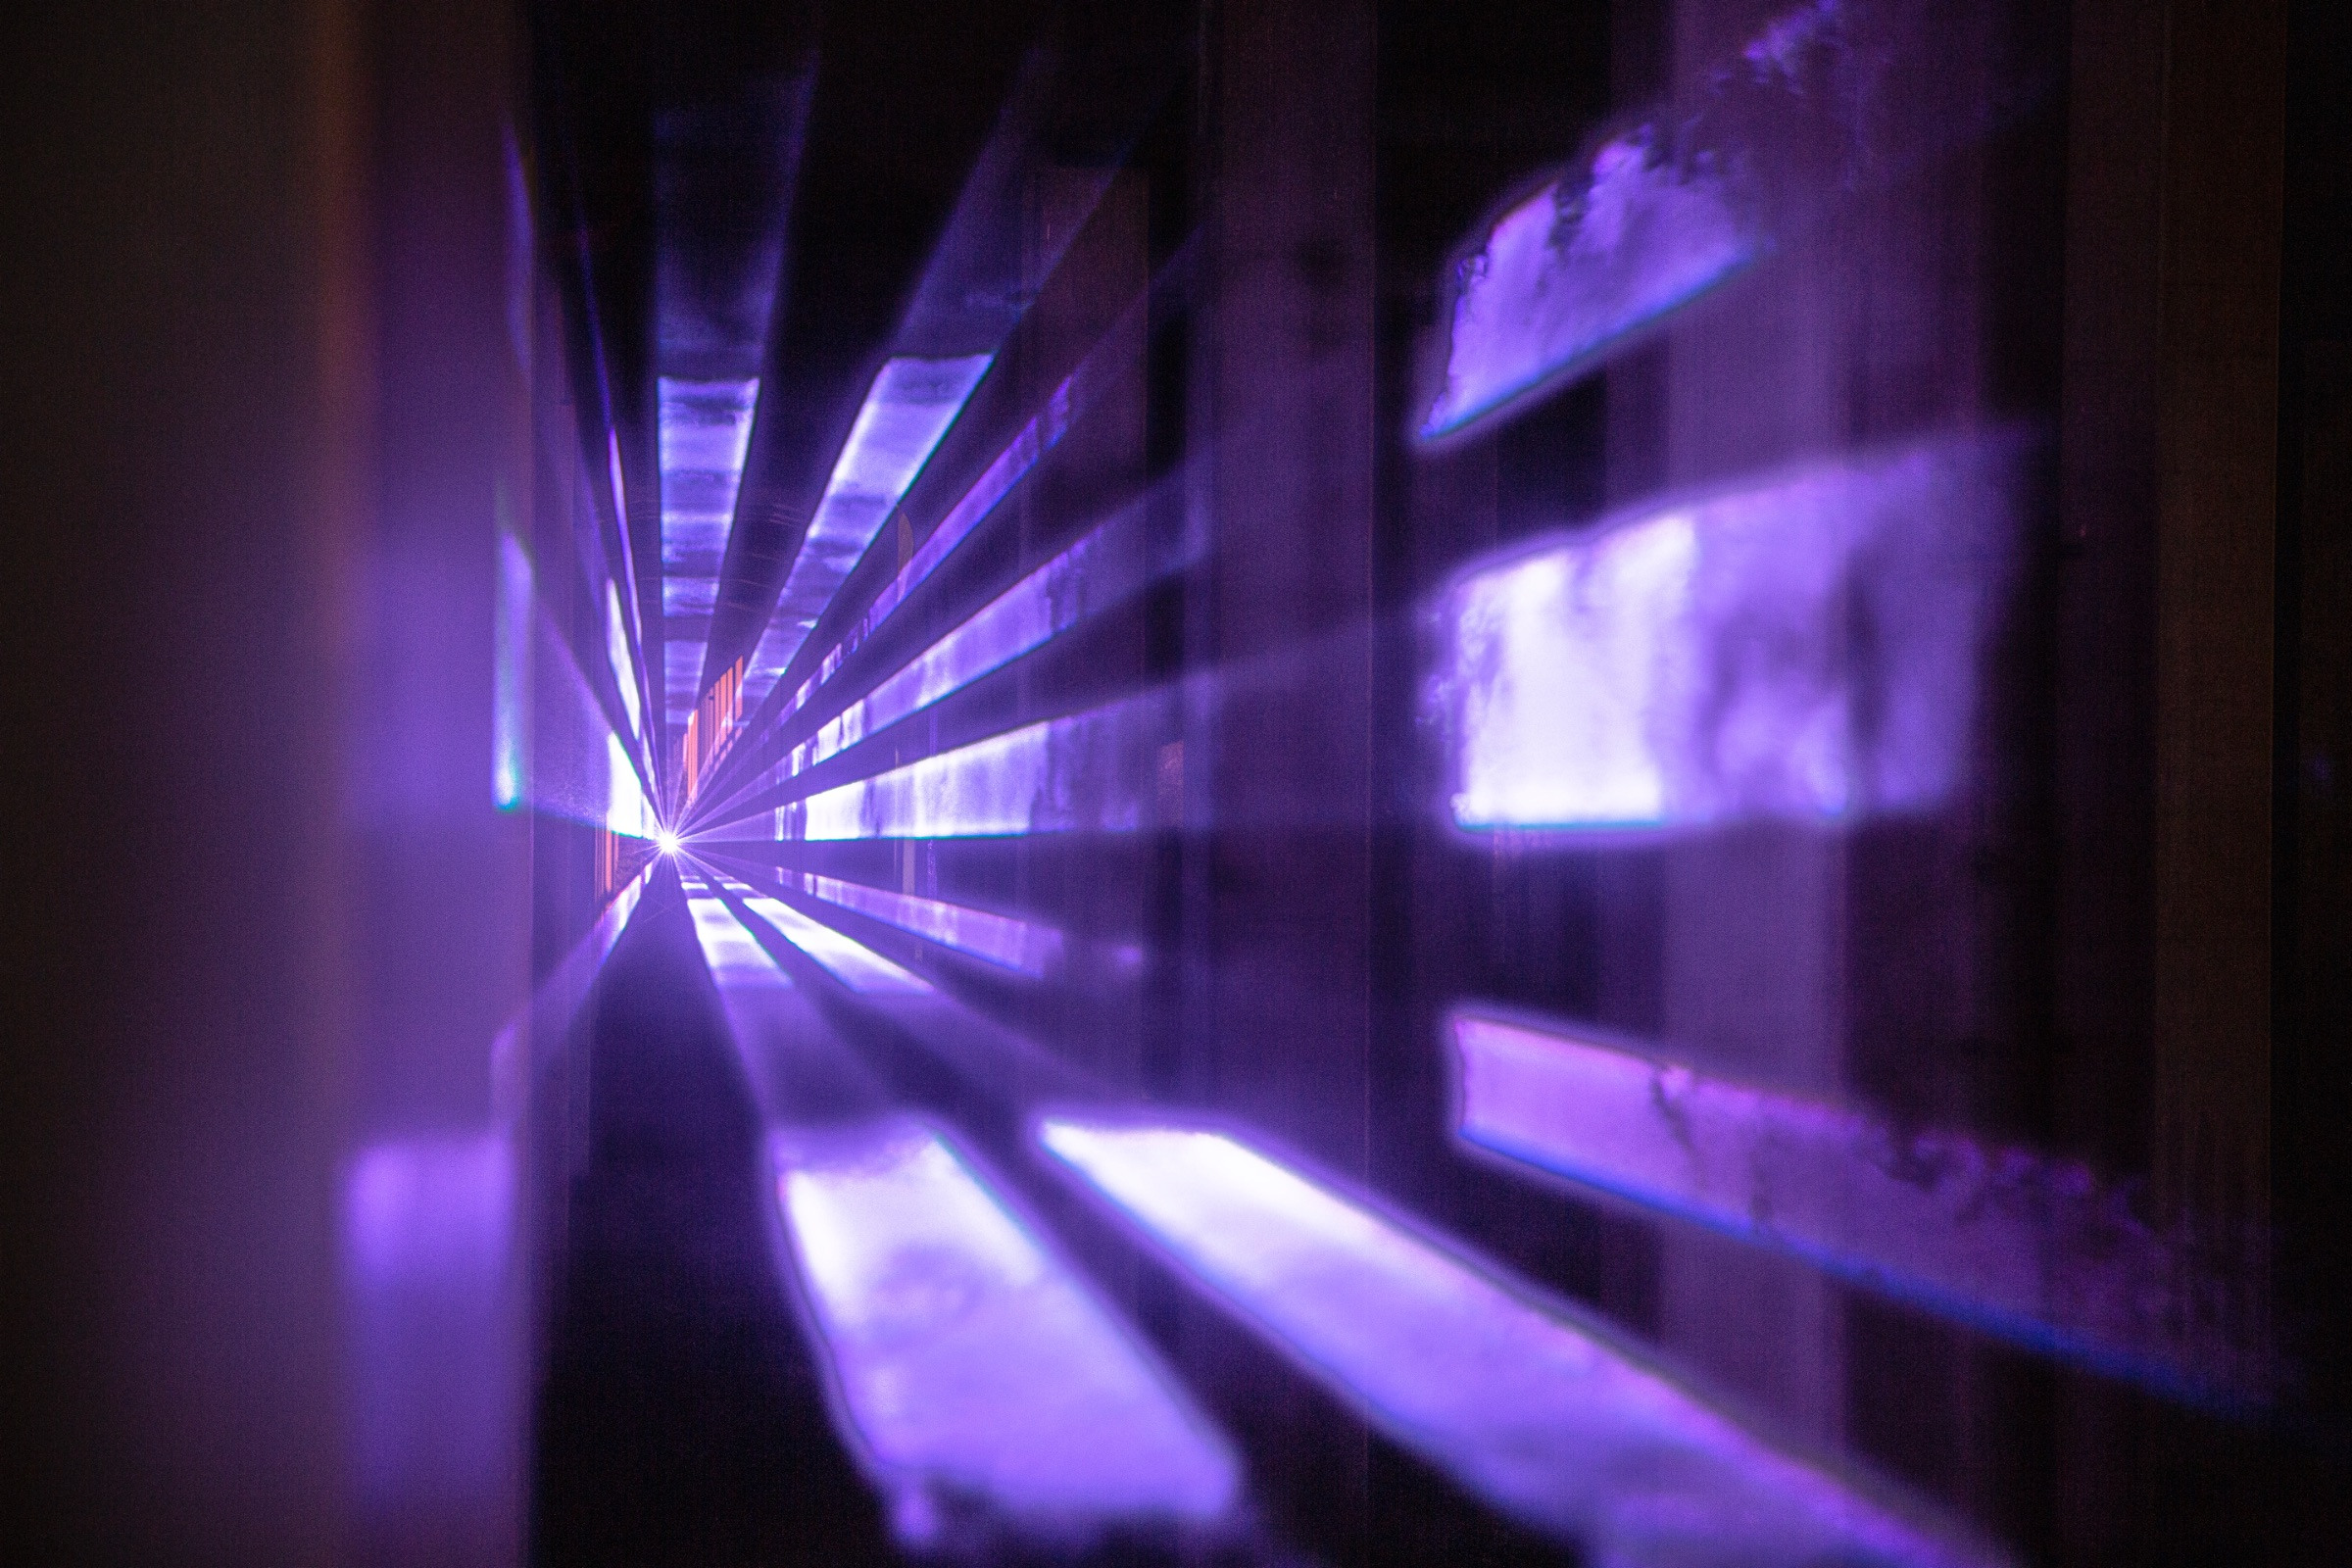 Lighting for Marcus Lyall's installation Presence